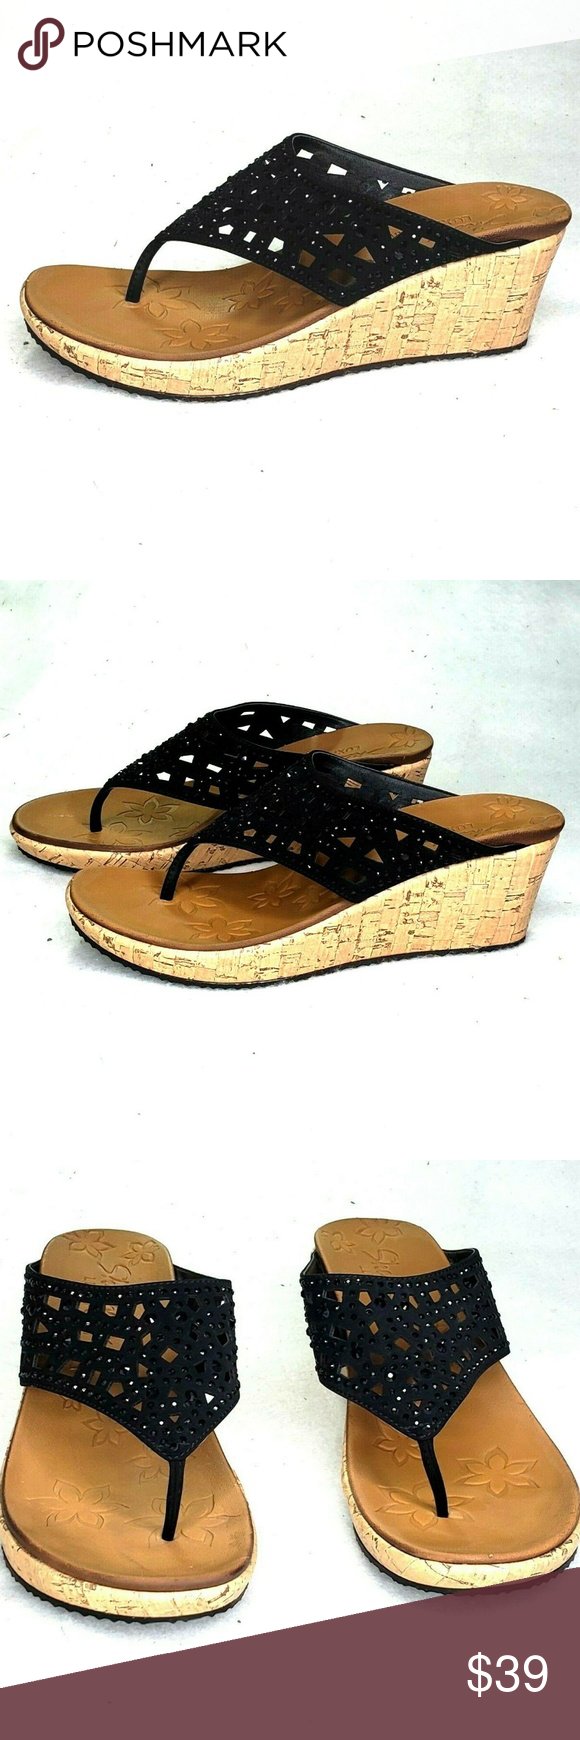 5b7625d8922 Skechers Beverlee Dazzed Wedge Thong Sandals 8.5 Skechers Cali Beverlee  Dazzled Wedge Thong Sandals The only